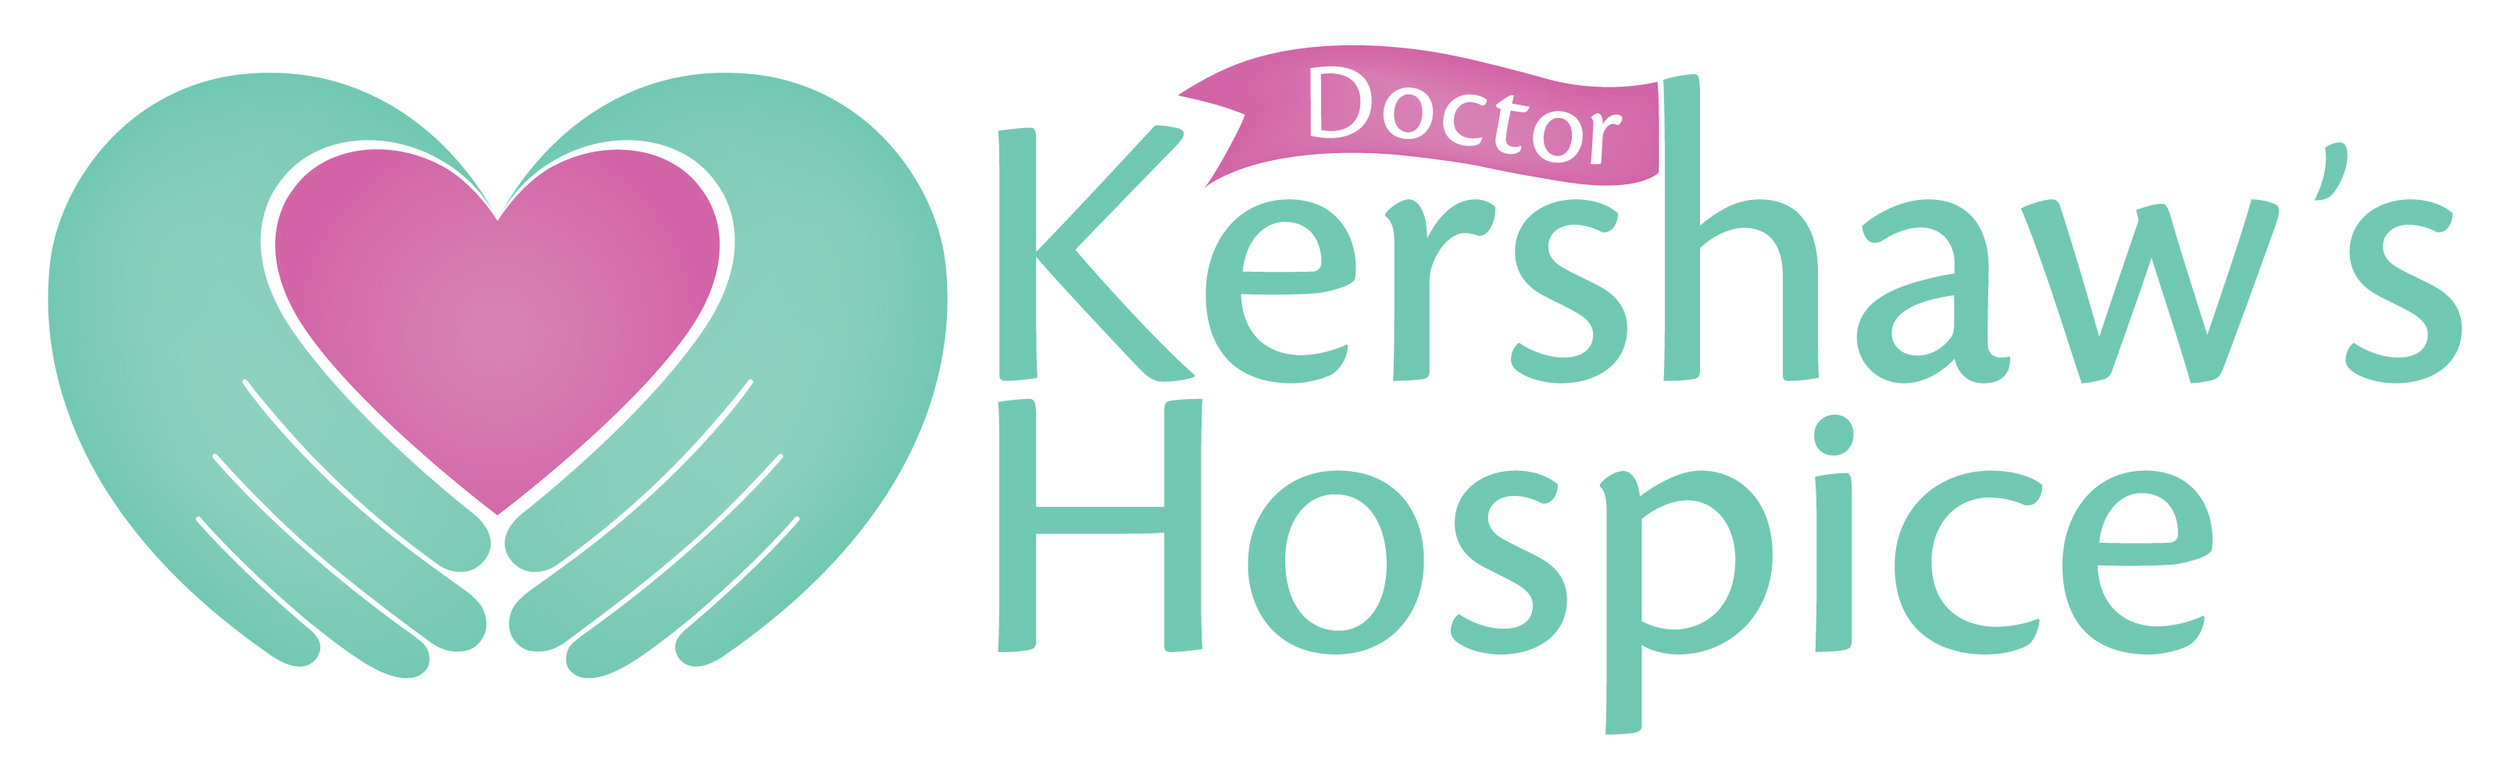 OSKA® Pressure Care Experts _ Doctor Kershaw's Hospice Testimonial